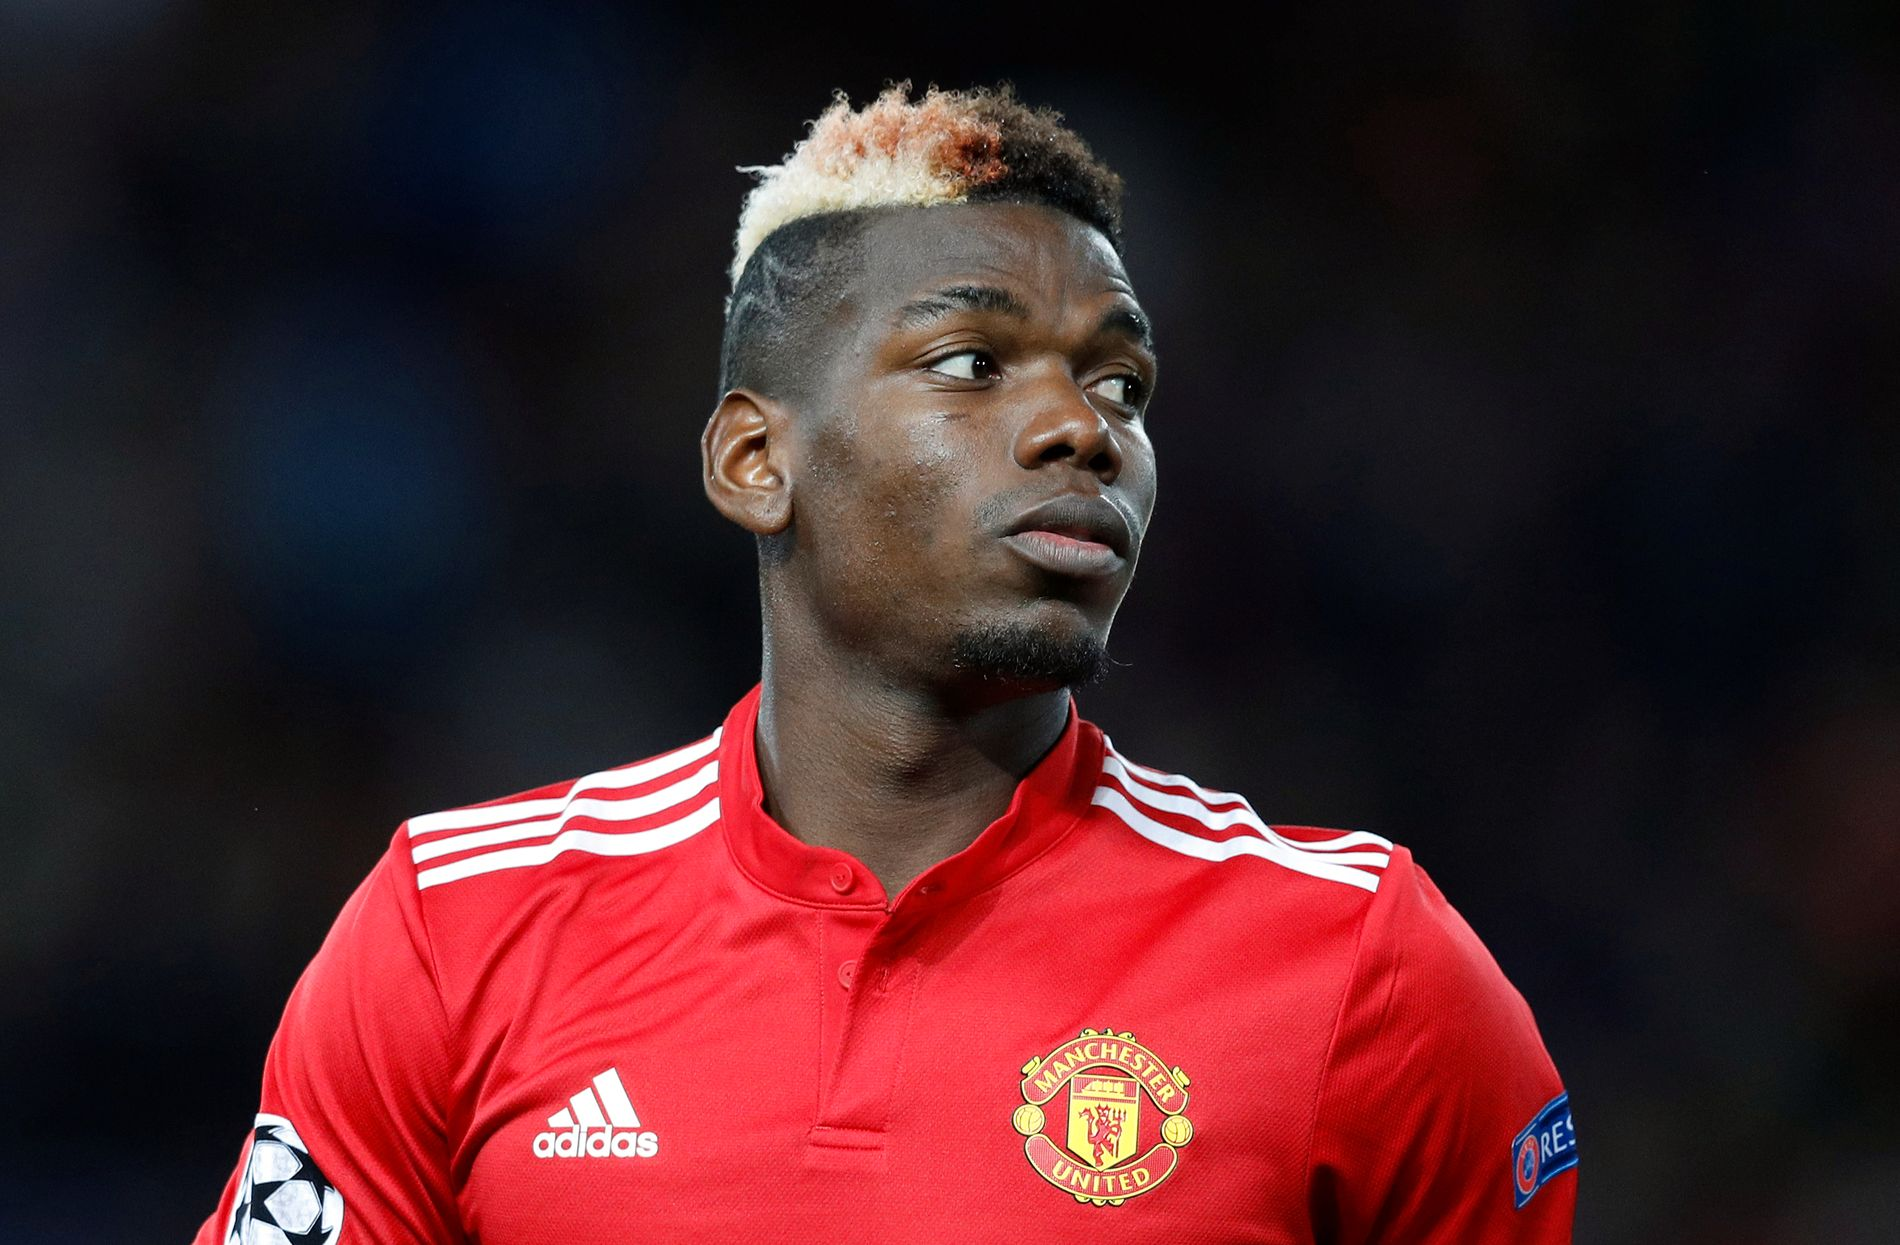 OVER ET ÅR UTEN TAP: Paul Pogba, her under kamp mot CSKA Moskva, taper nesten aldri i Premier League.